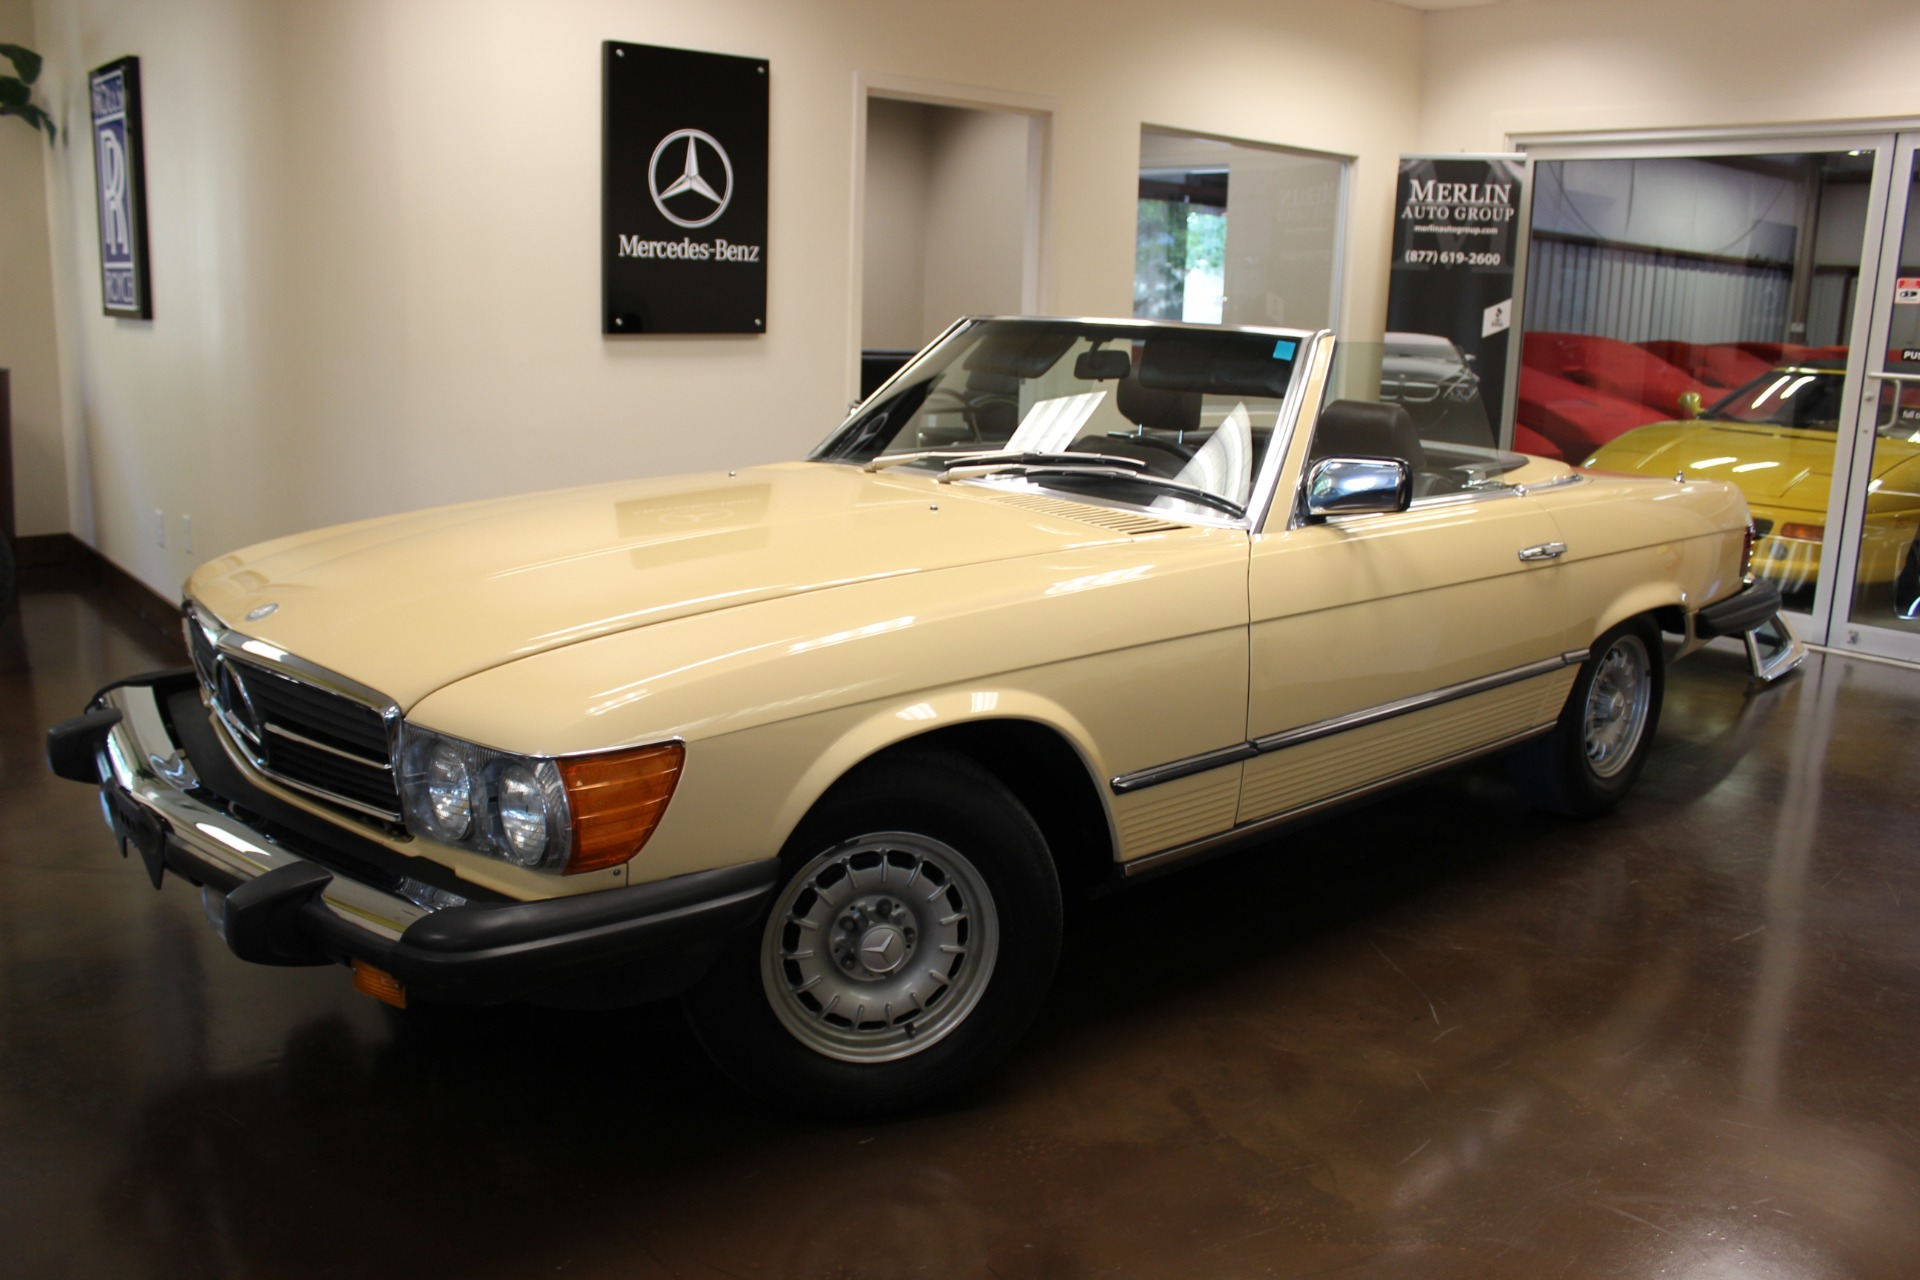 Used 1983 mercedes benz 380 stock p3159 ultra luxury car for Mercedes benz 1983